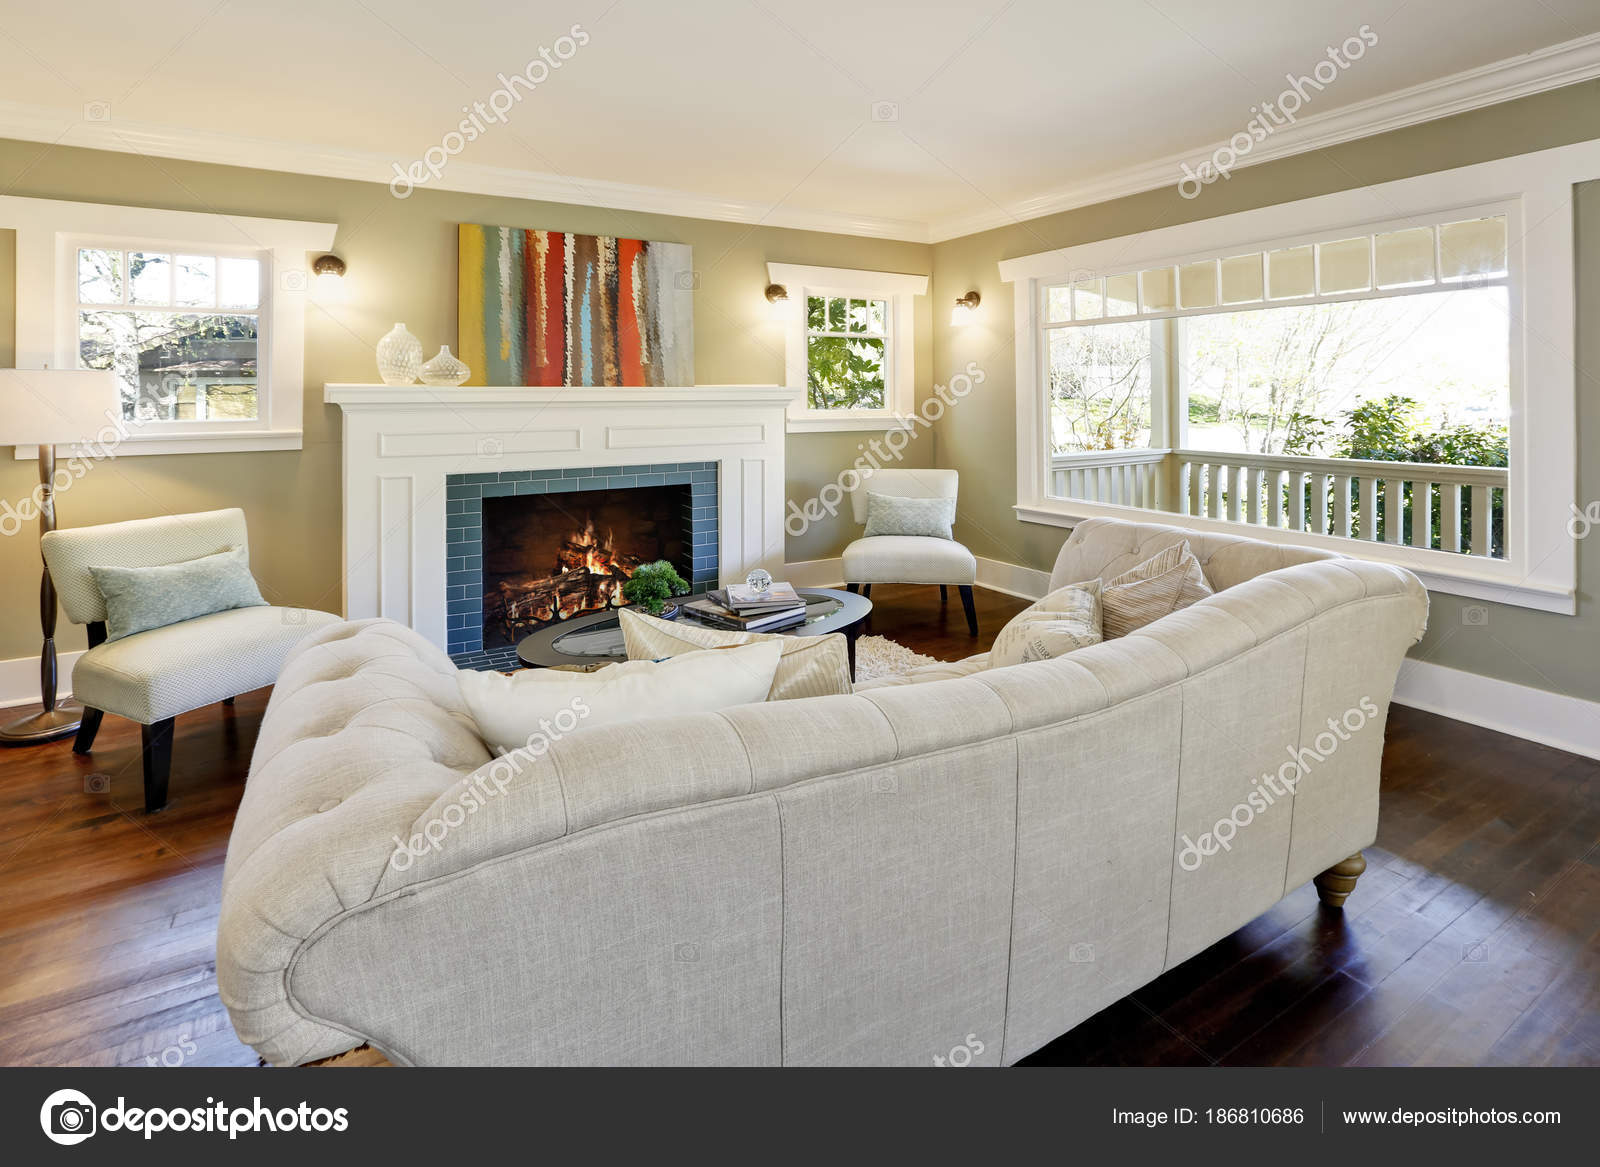 Chic Green Living Room With A Traditional Fireplace Stock